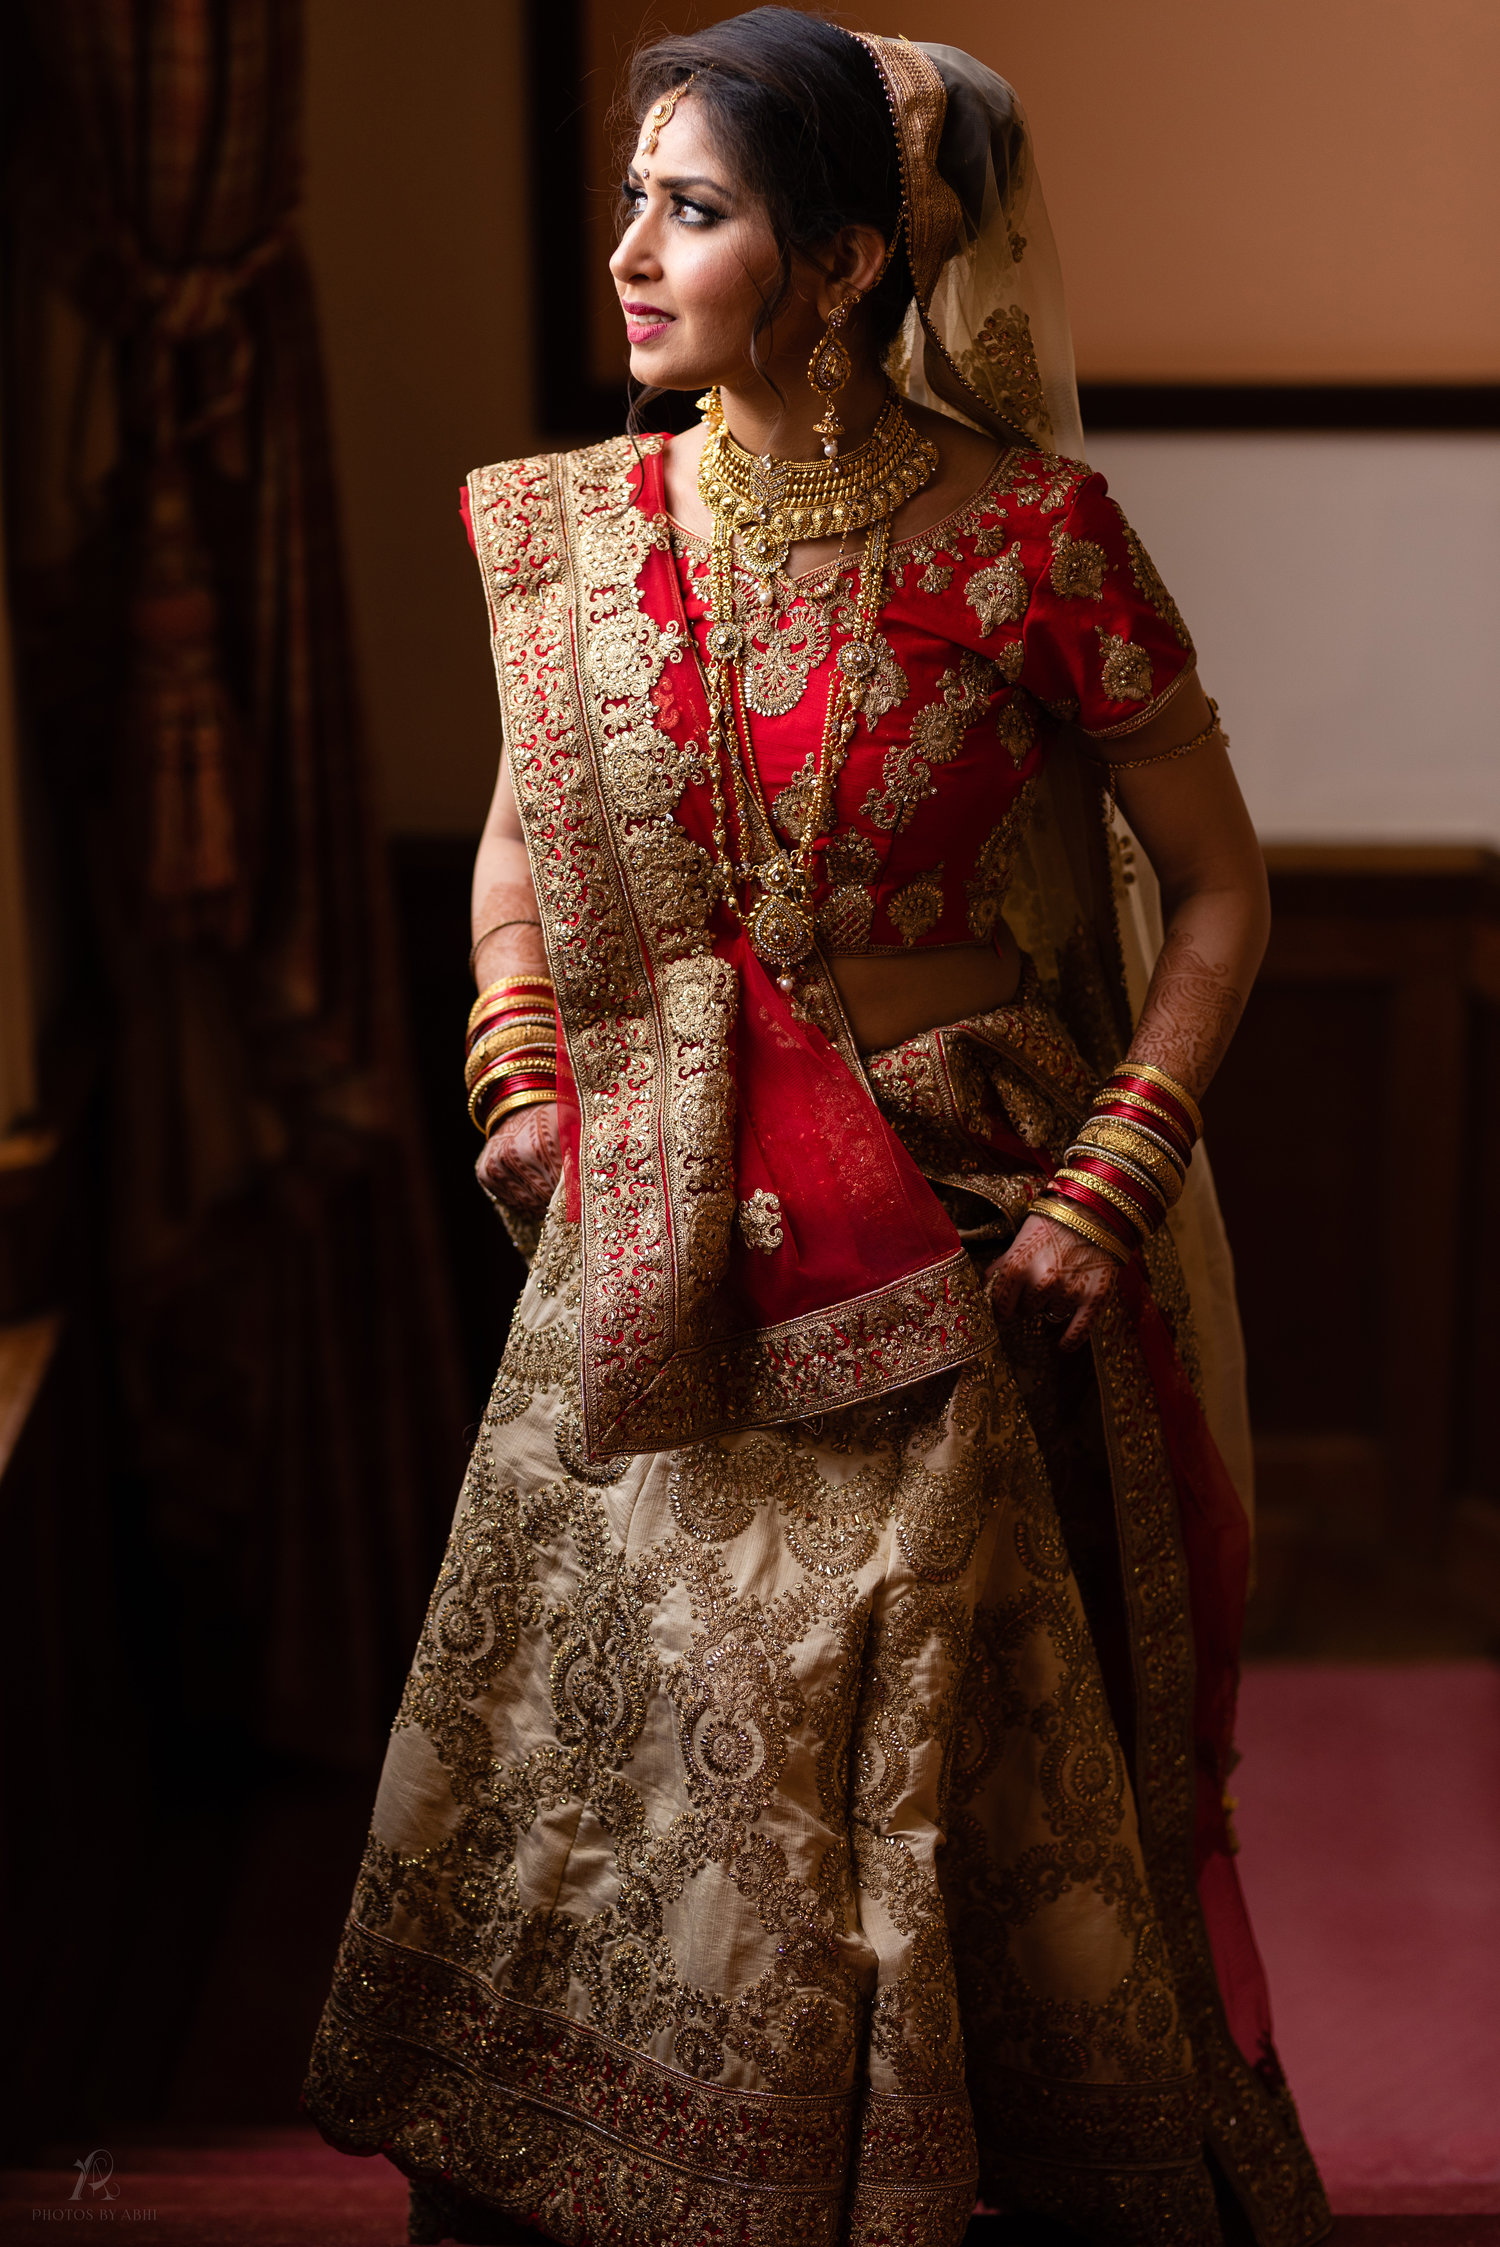 Meet Meera our beautiful bride, on her Hindu wedding day beautifully captured at Scalford Hall Hotel, Melton Mowbray